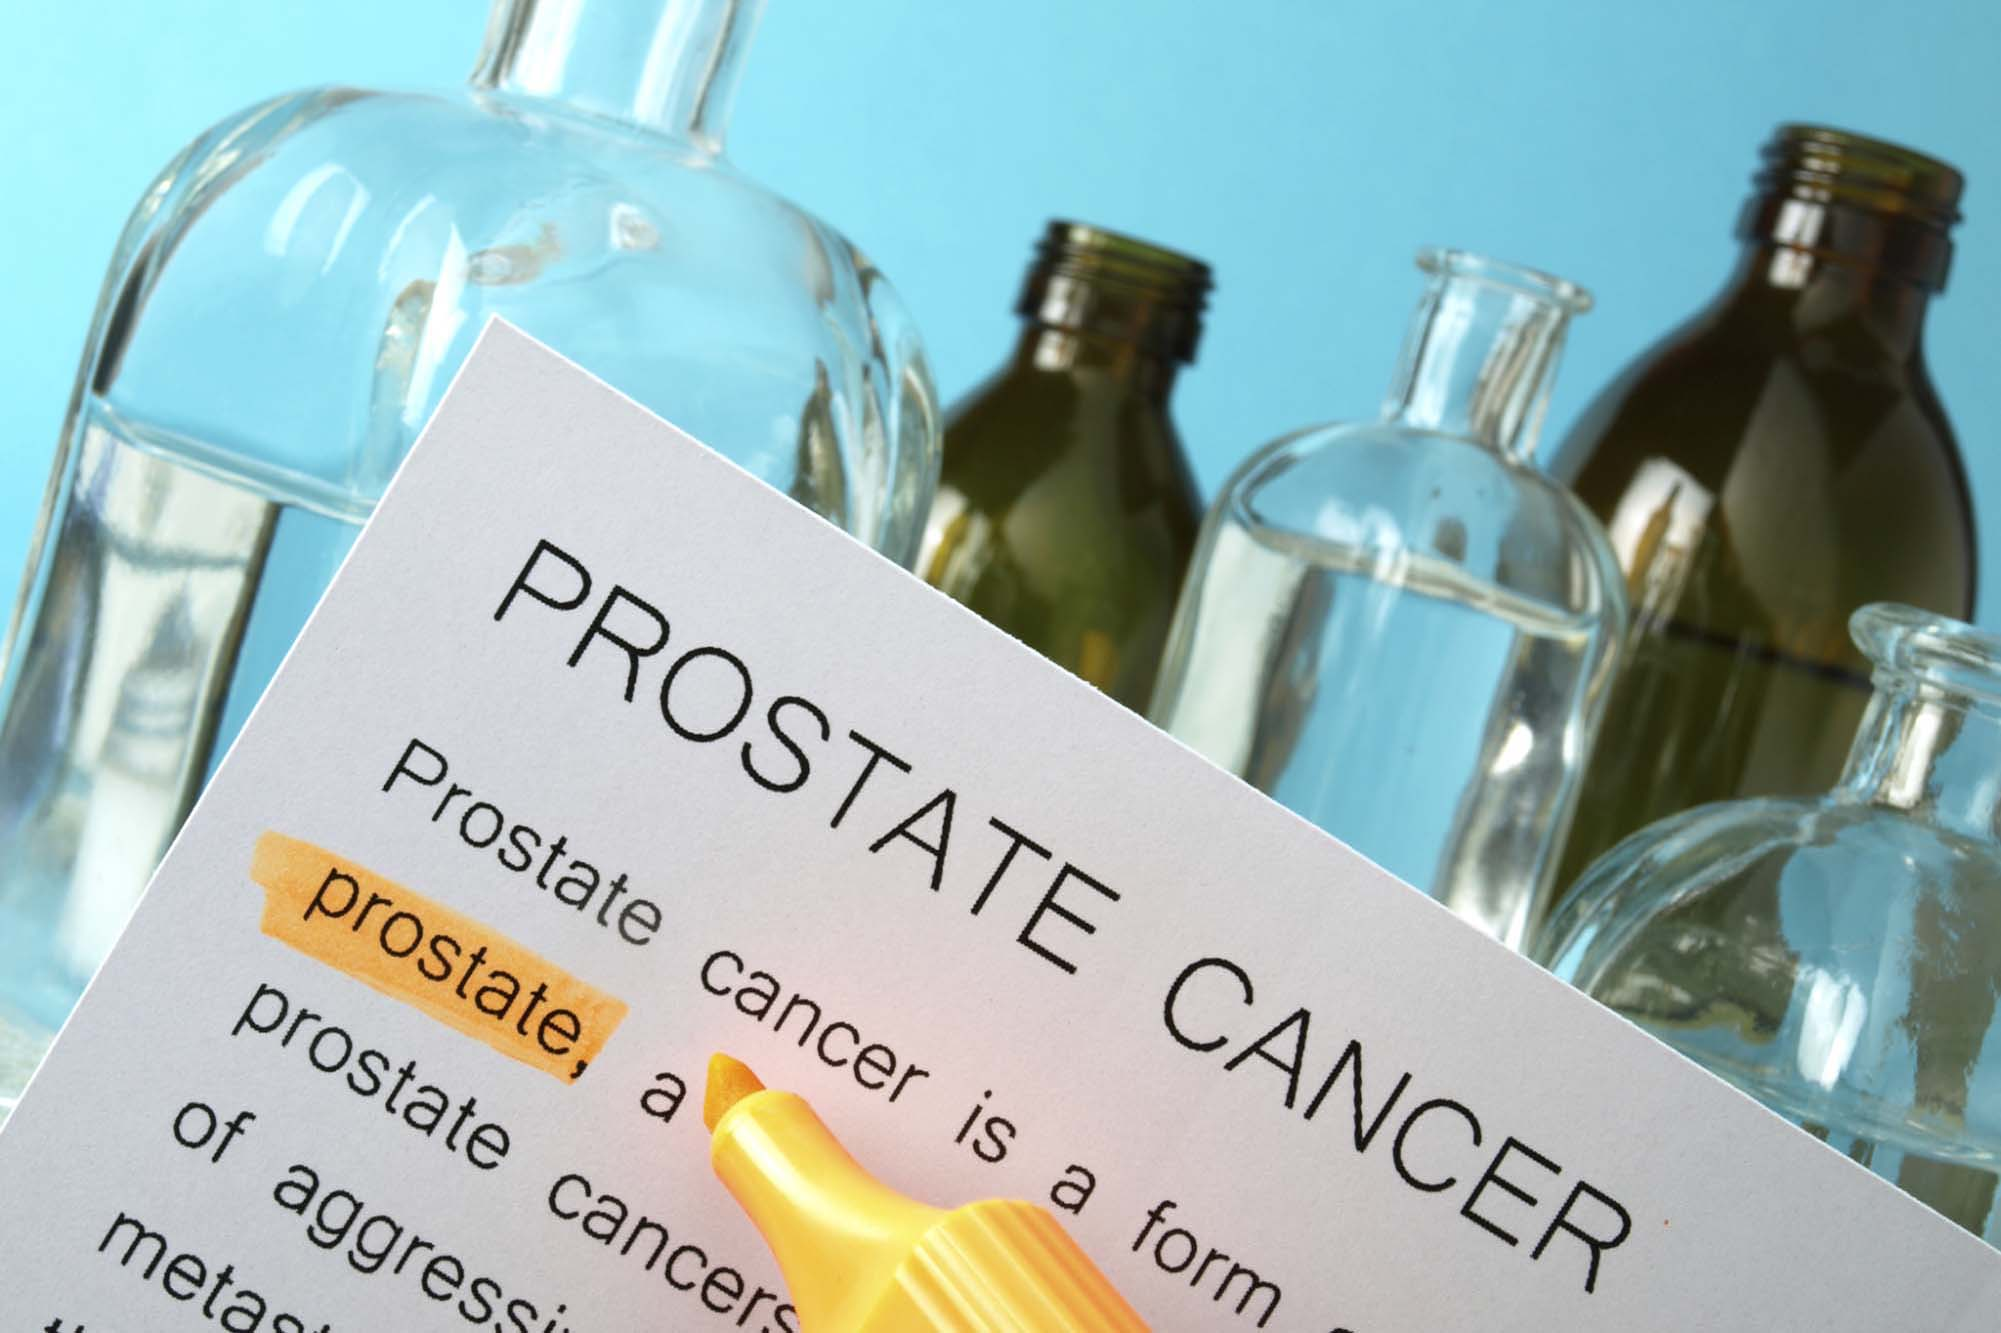 Most men don't have any prostate cancer symptoms in the early stages, which makes it extremely dangerous, but there are a few warning signs to keep in mind.